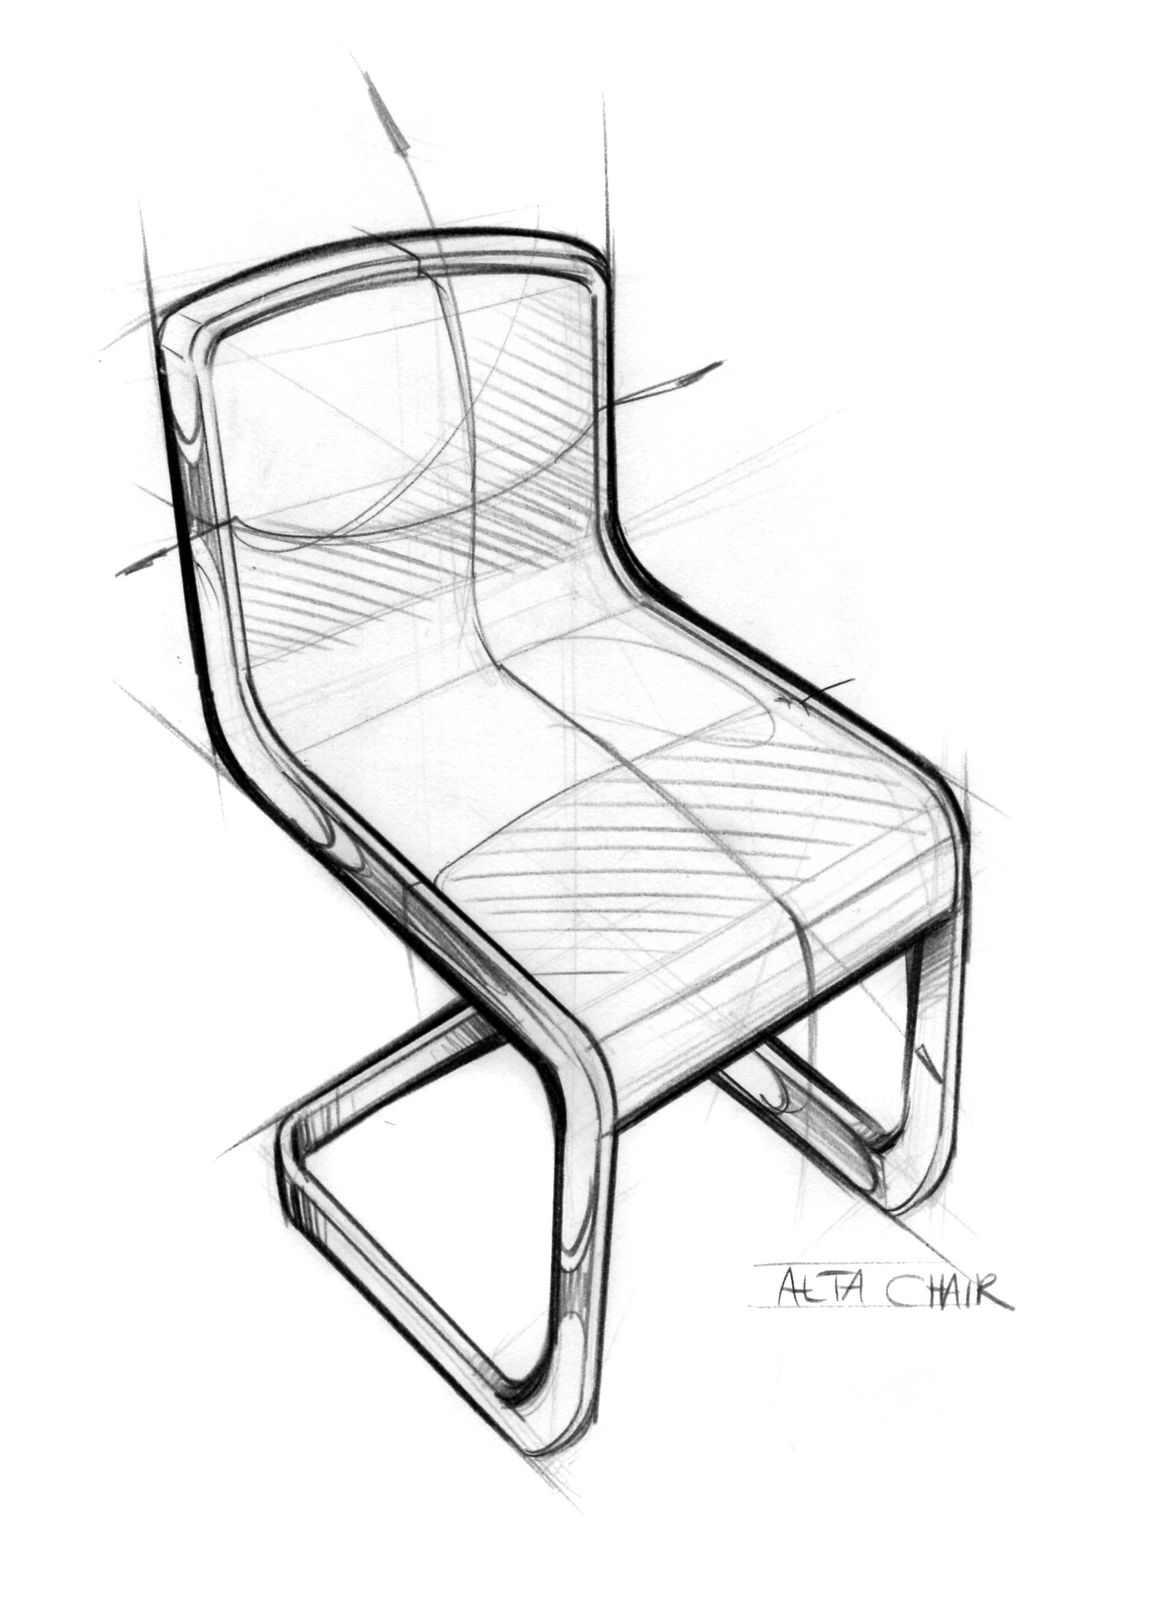 Eames Chair Drawing Notes From The Atelier Alta Chair Sketch